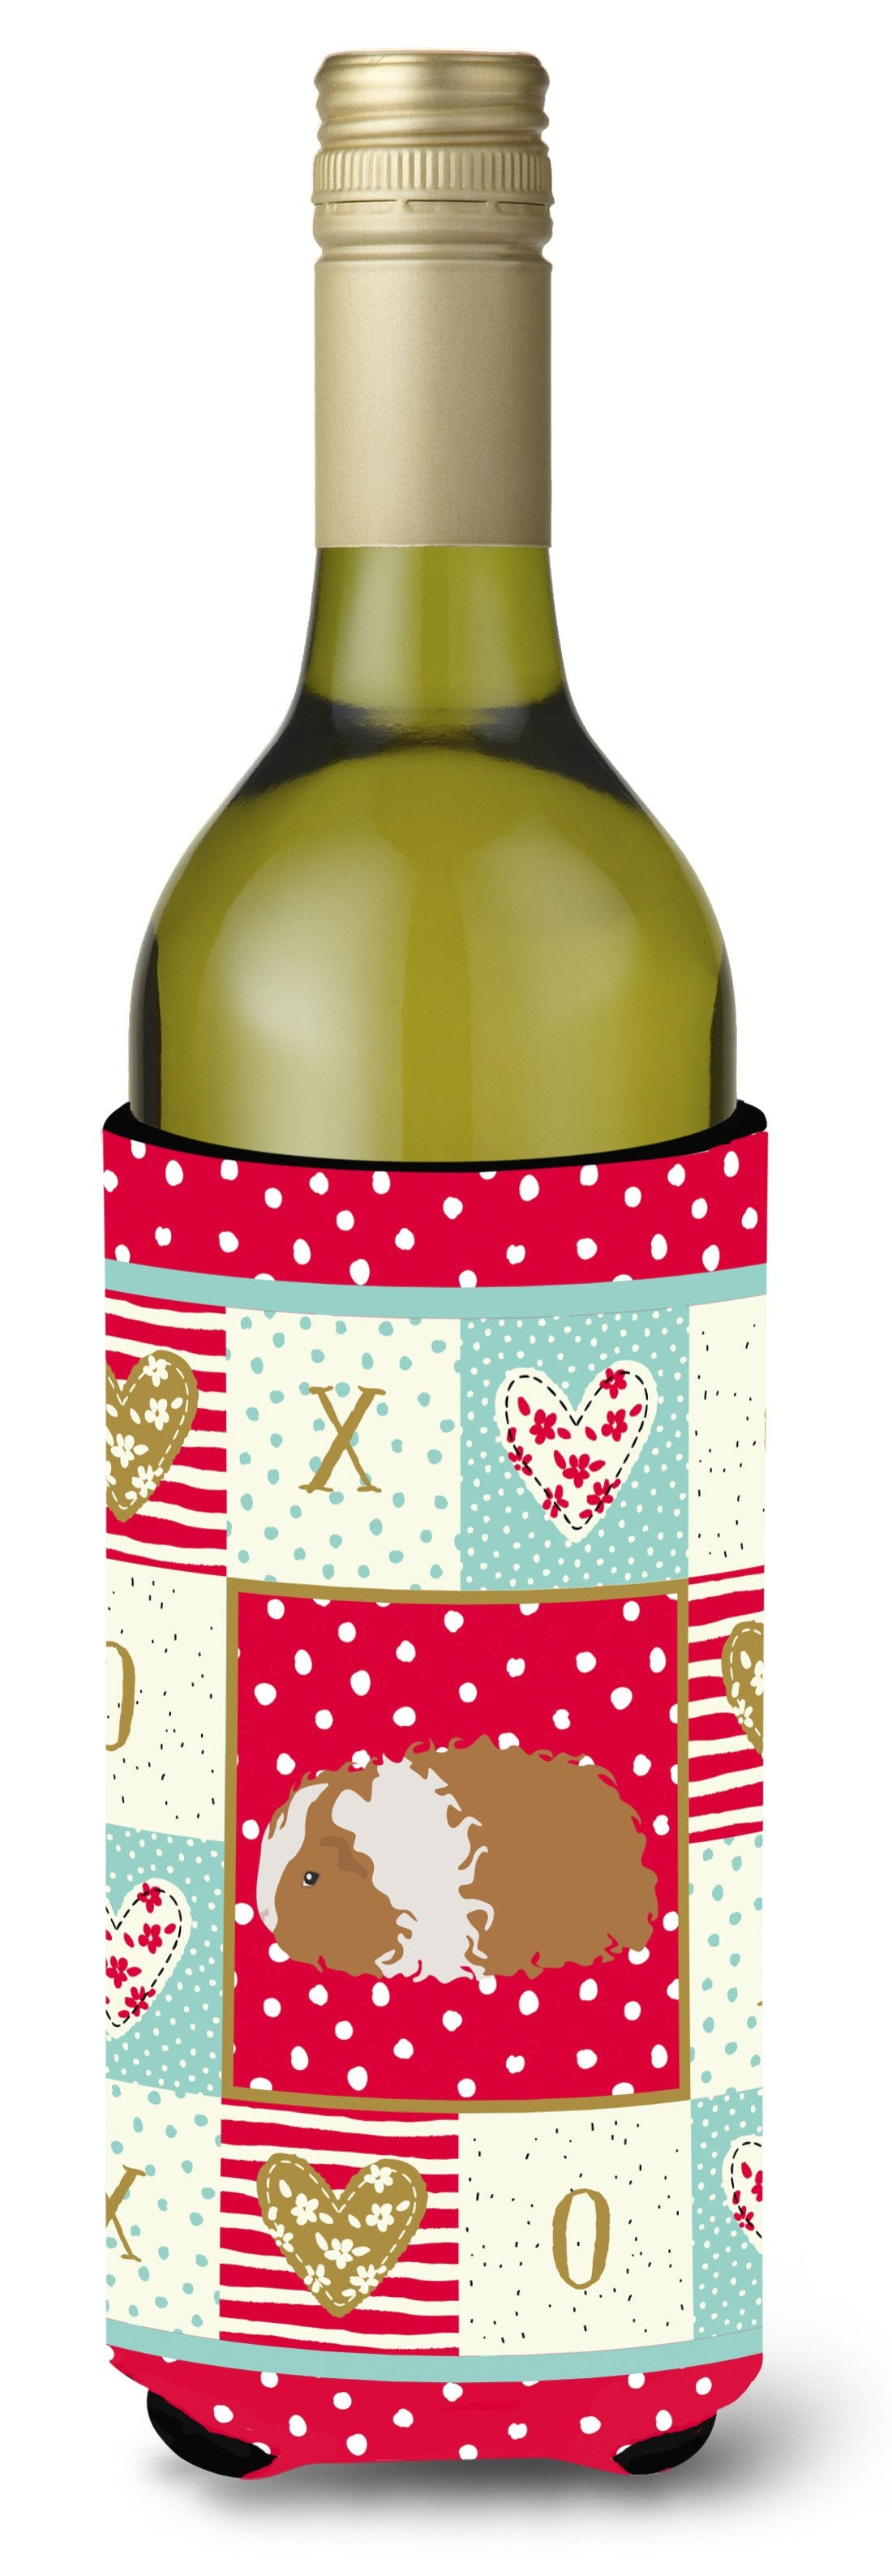 Texel Guinea Pig Love Wine Bottle Hugger CK5437LITERK by Caroline's Treasures